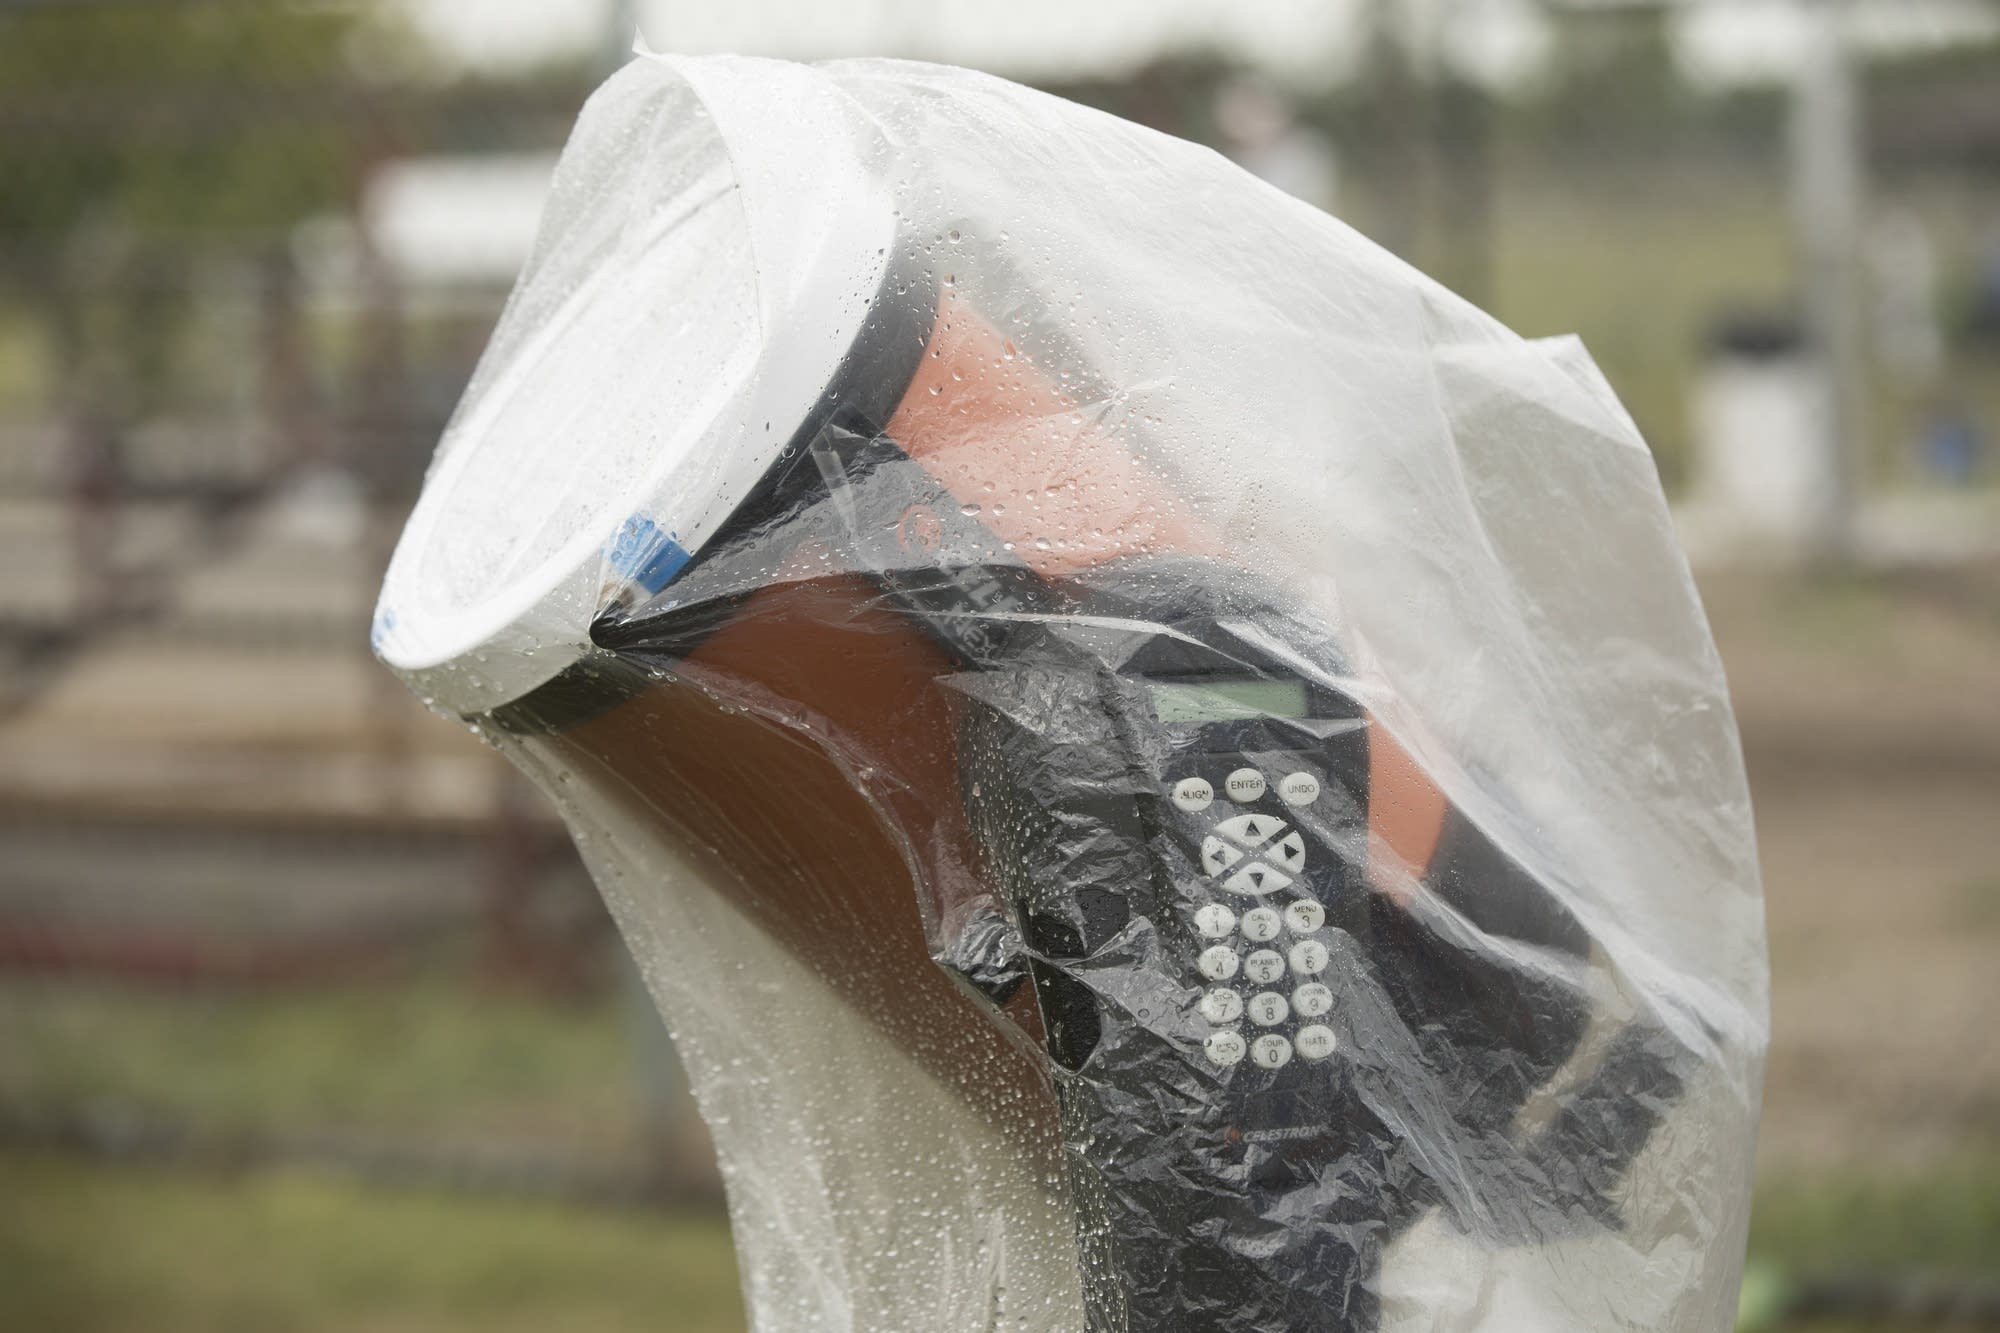 An astronomer put a plastic bag over his telescope to keep it dry.